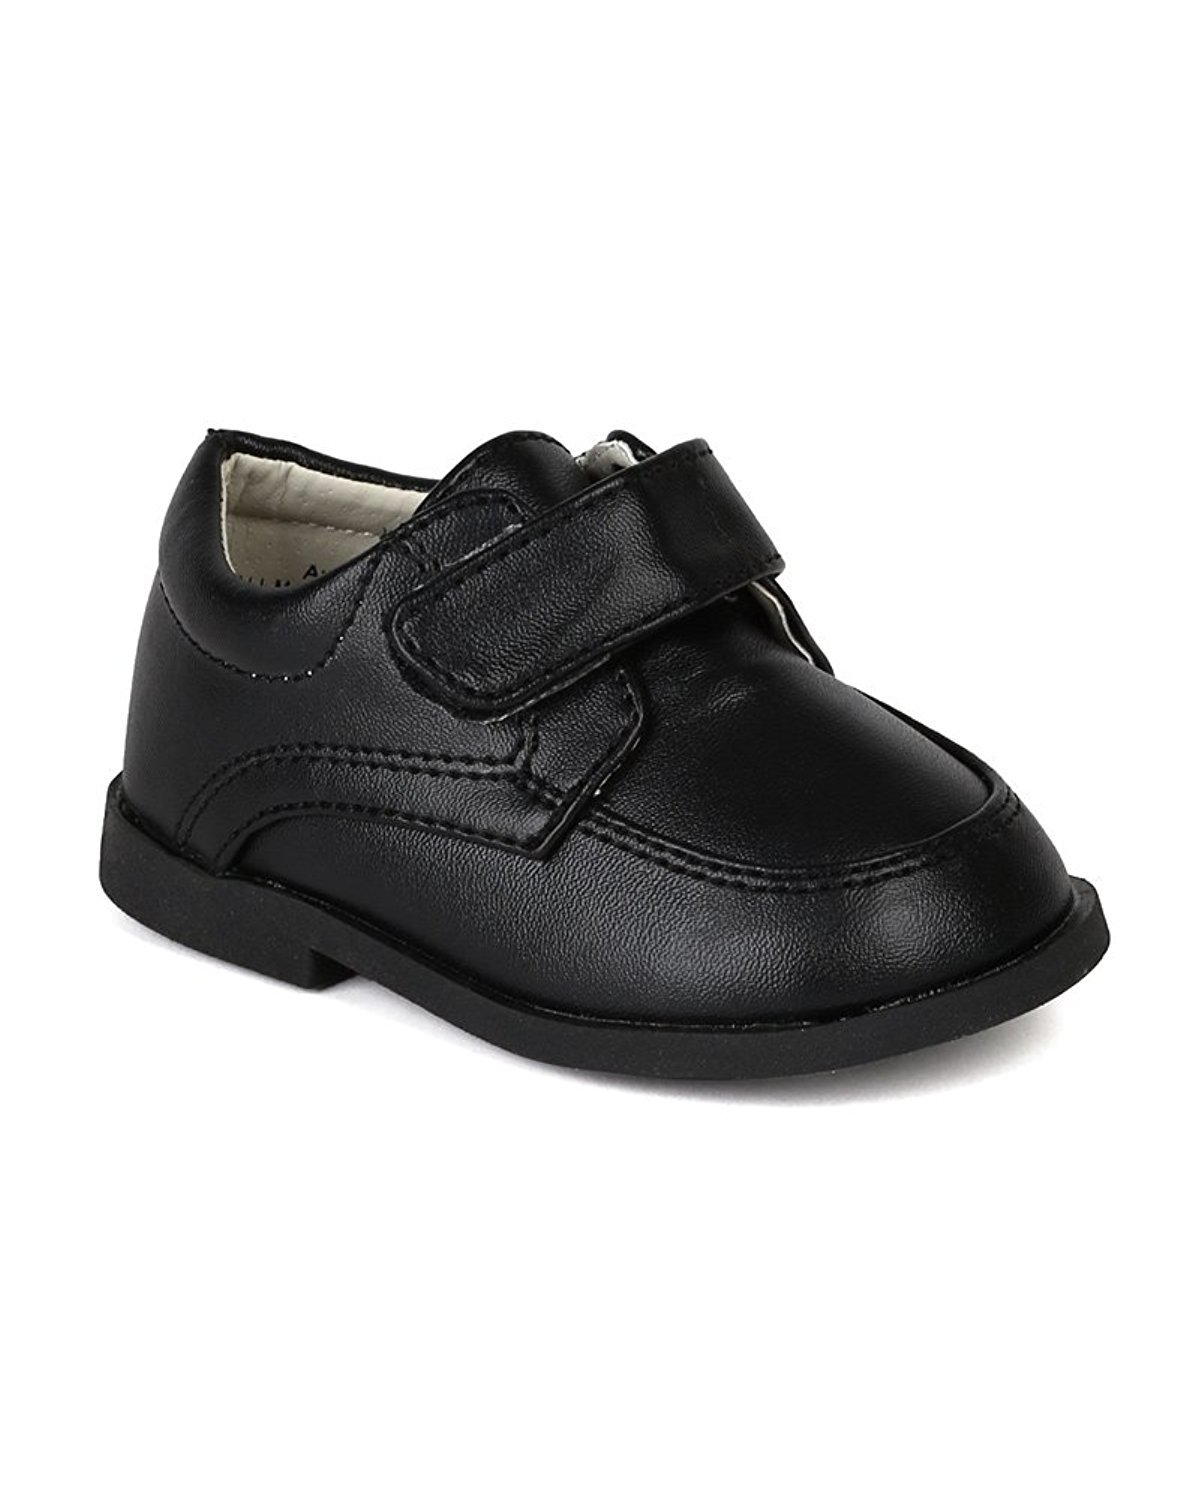 Auston AH58 Leatherette Velcro Strap School Dress Shoe (Infant / Toddler Boys) - Black (Size: Toddler 4)